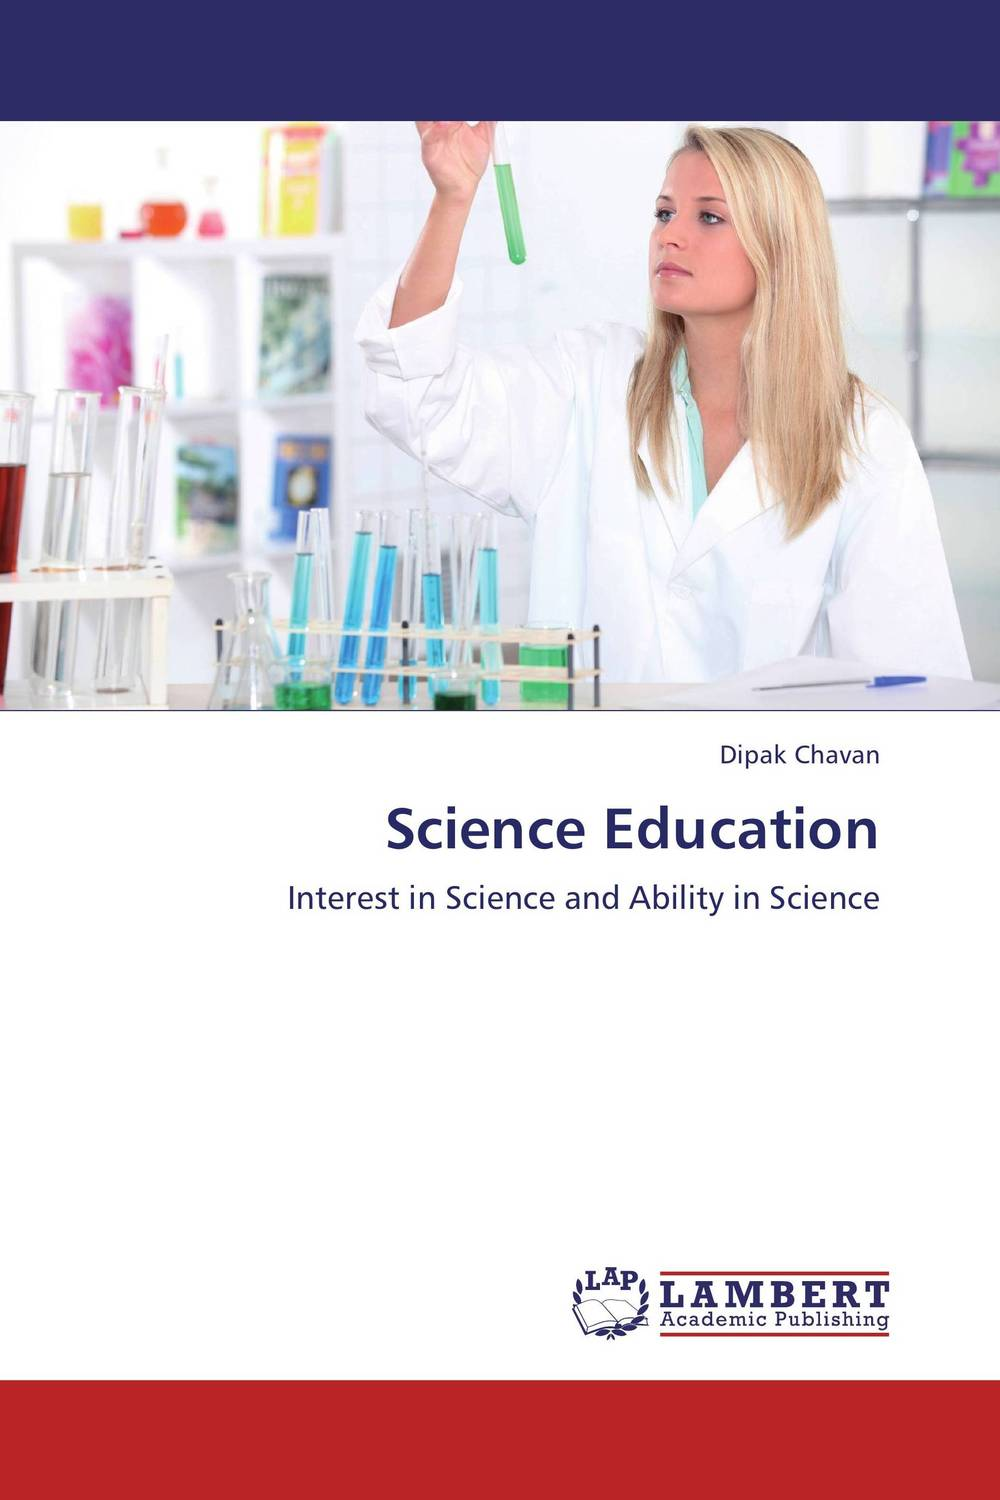 Science  Education gray underserved populations in science education